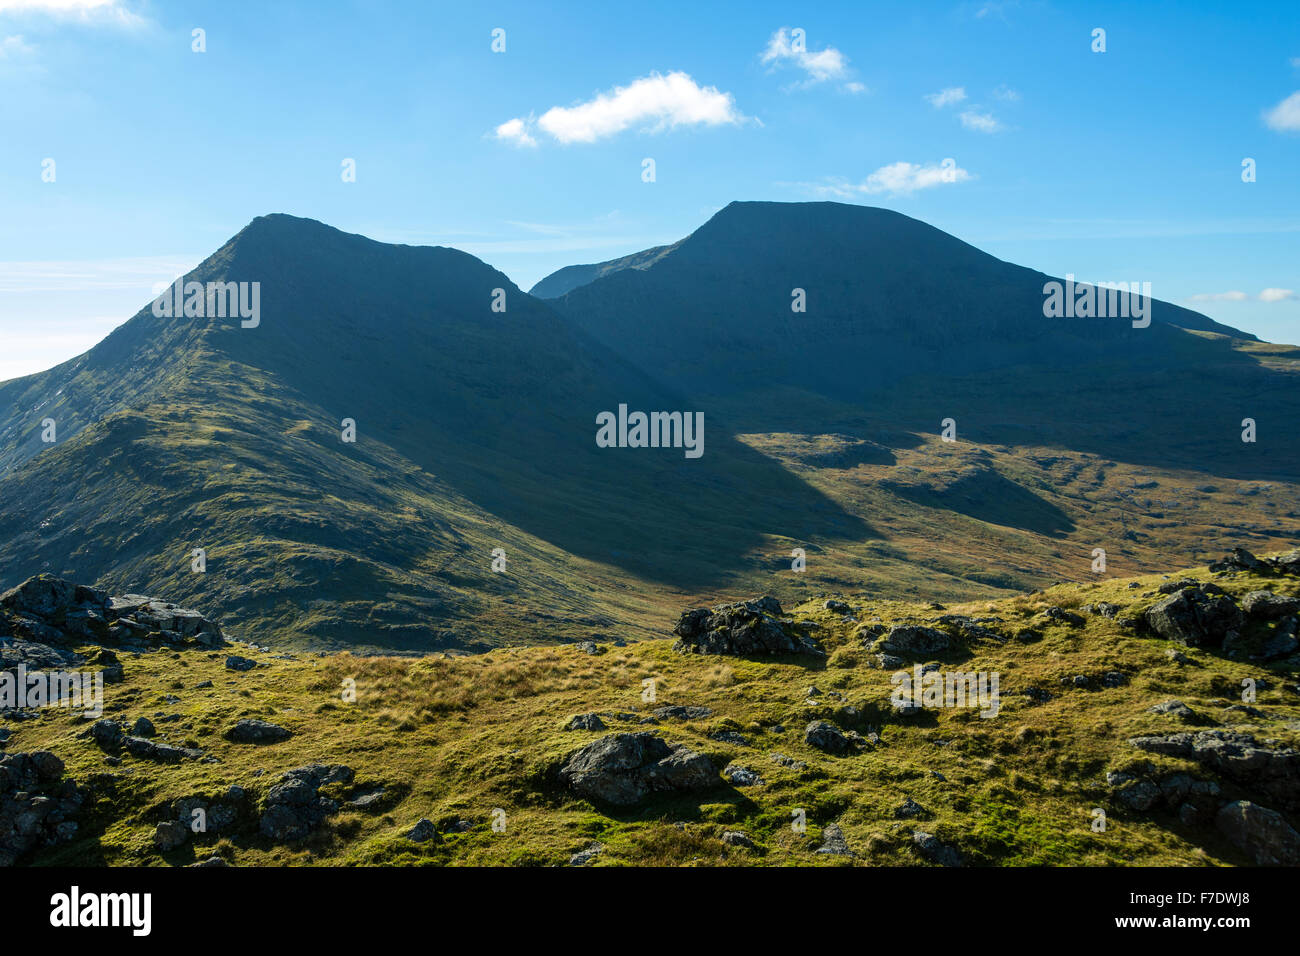 A' Chioch and Ben More from near the summit of Beinn Fhada, Isle of Mull, Argyll and Bute, Scotland, UK - Stock Image